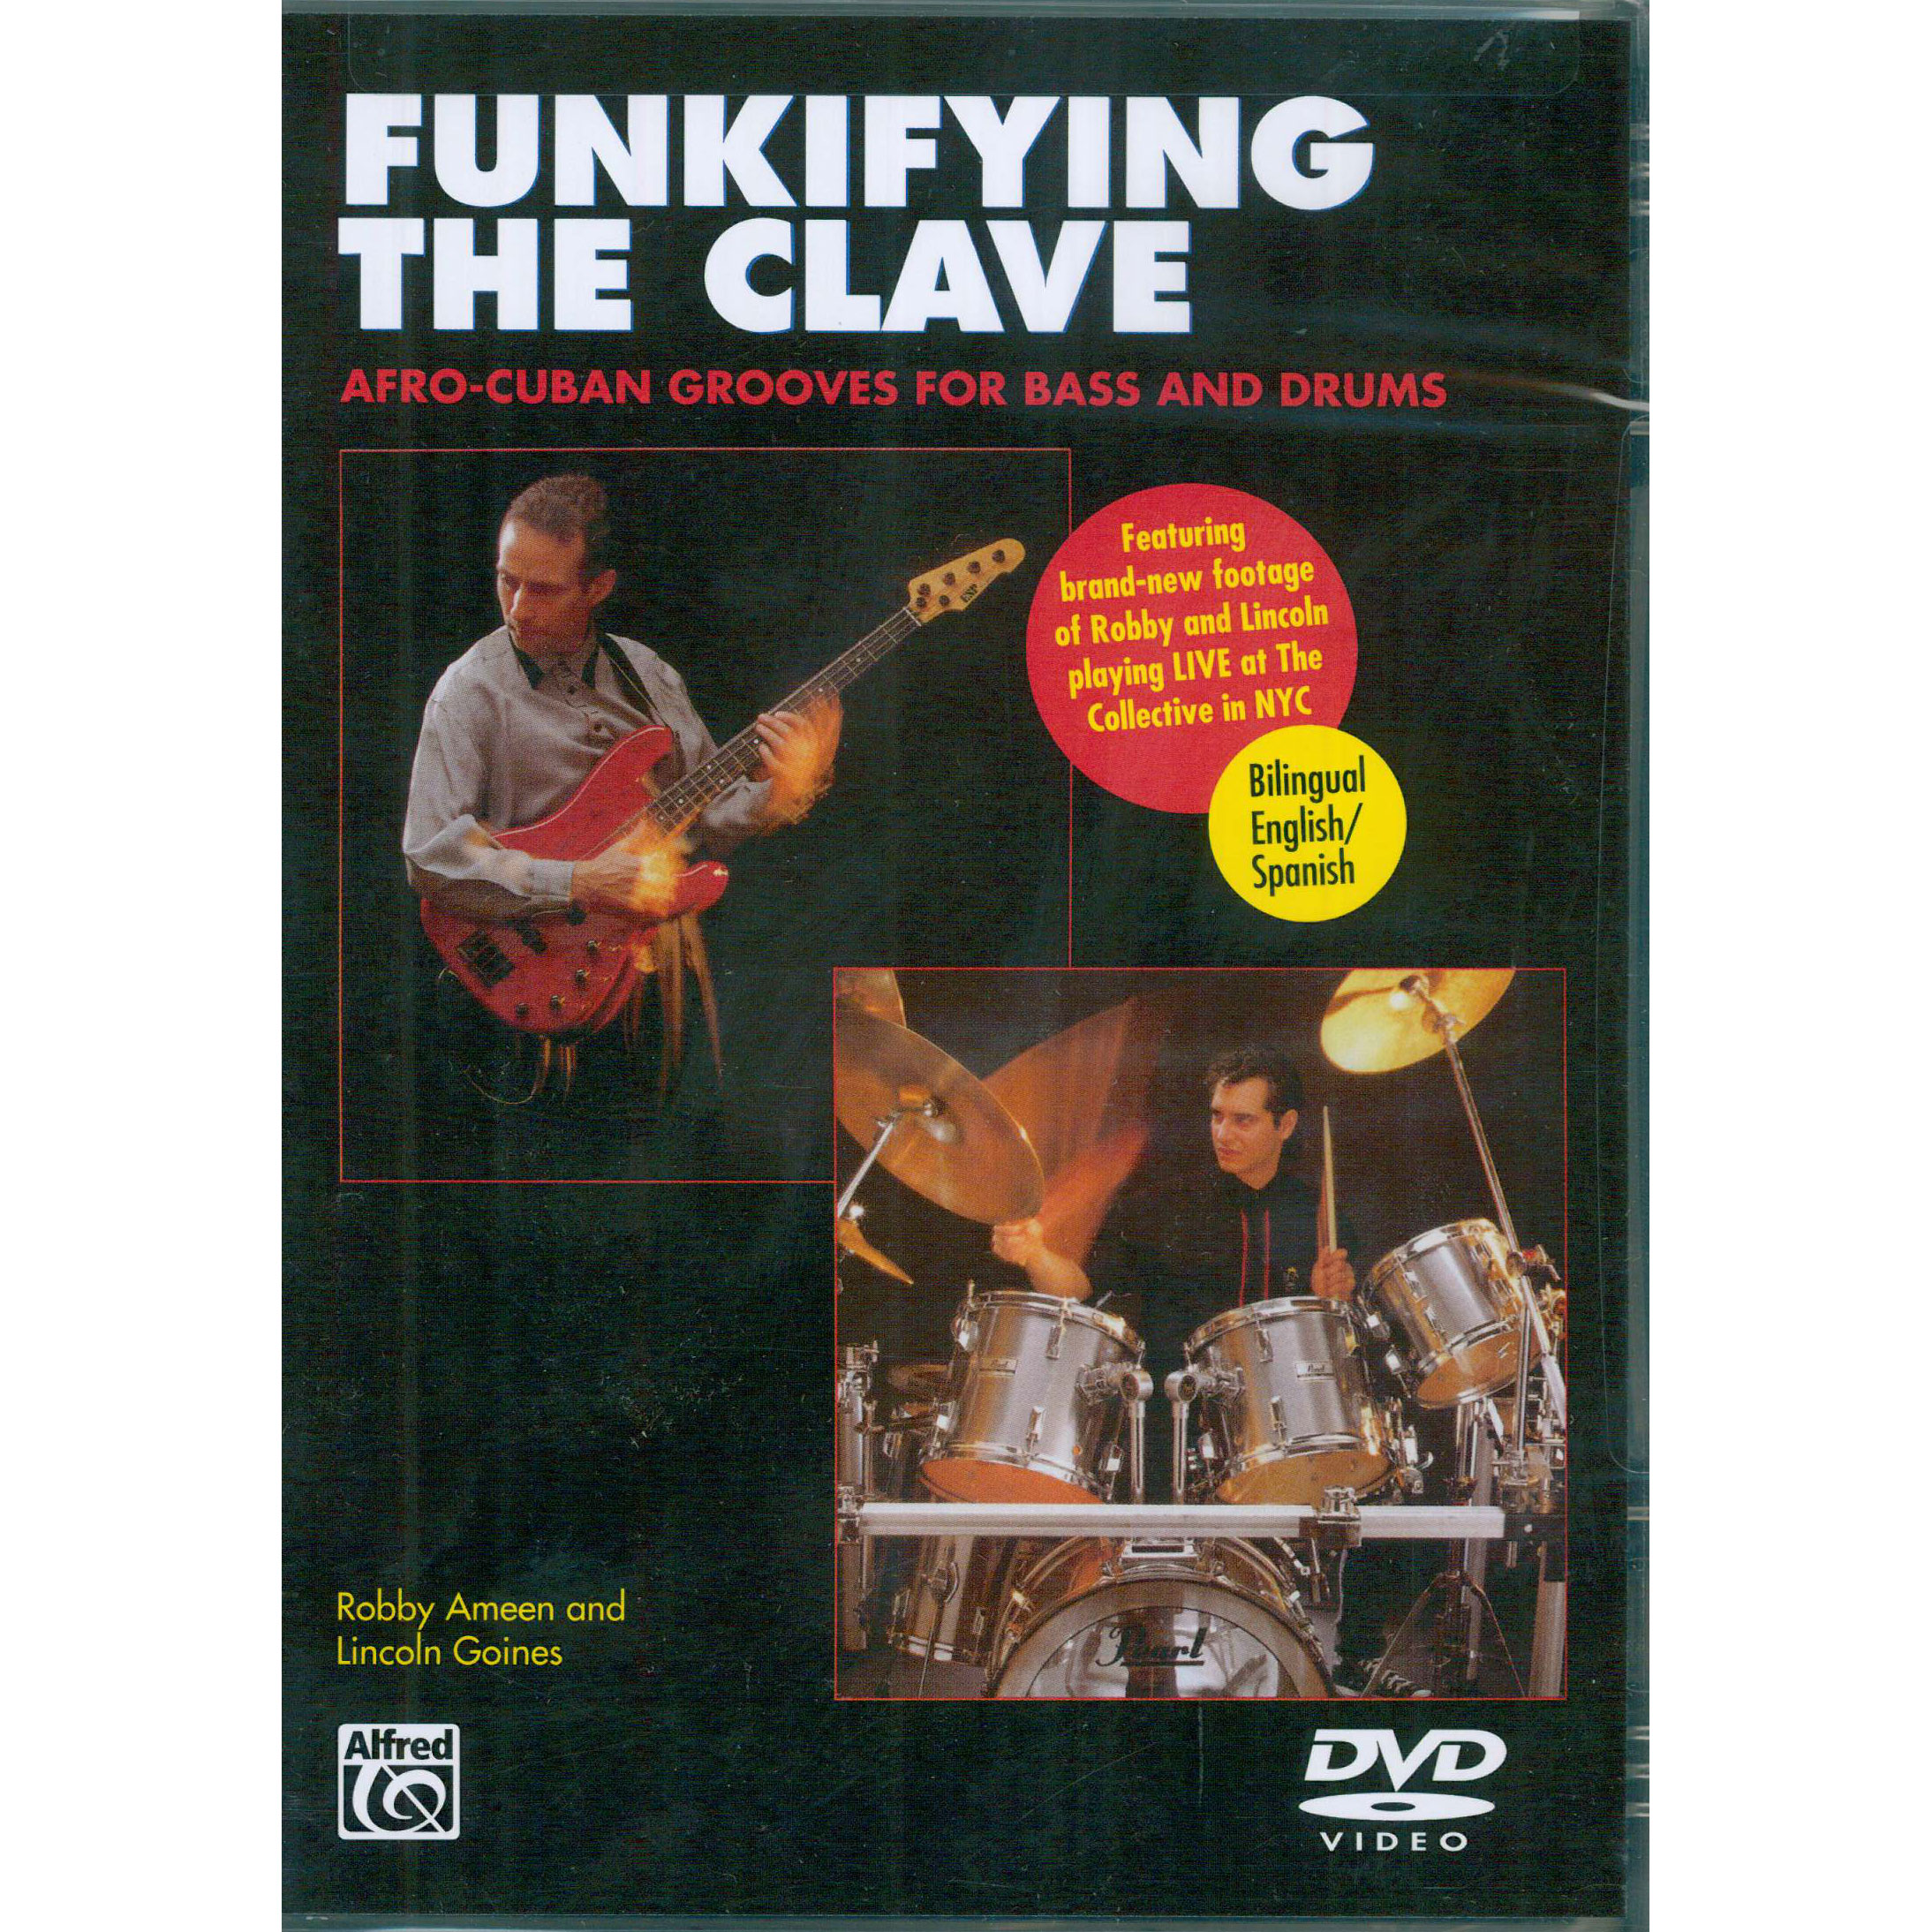 Funkifying the Clave DVD